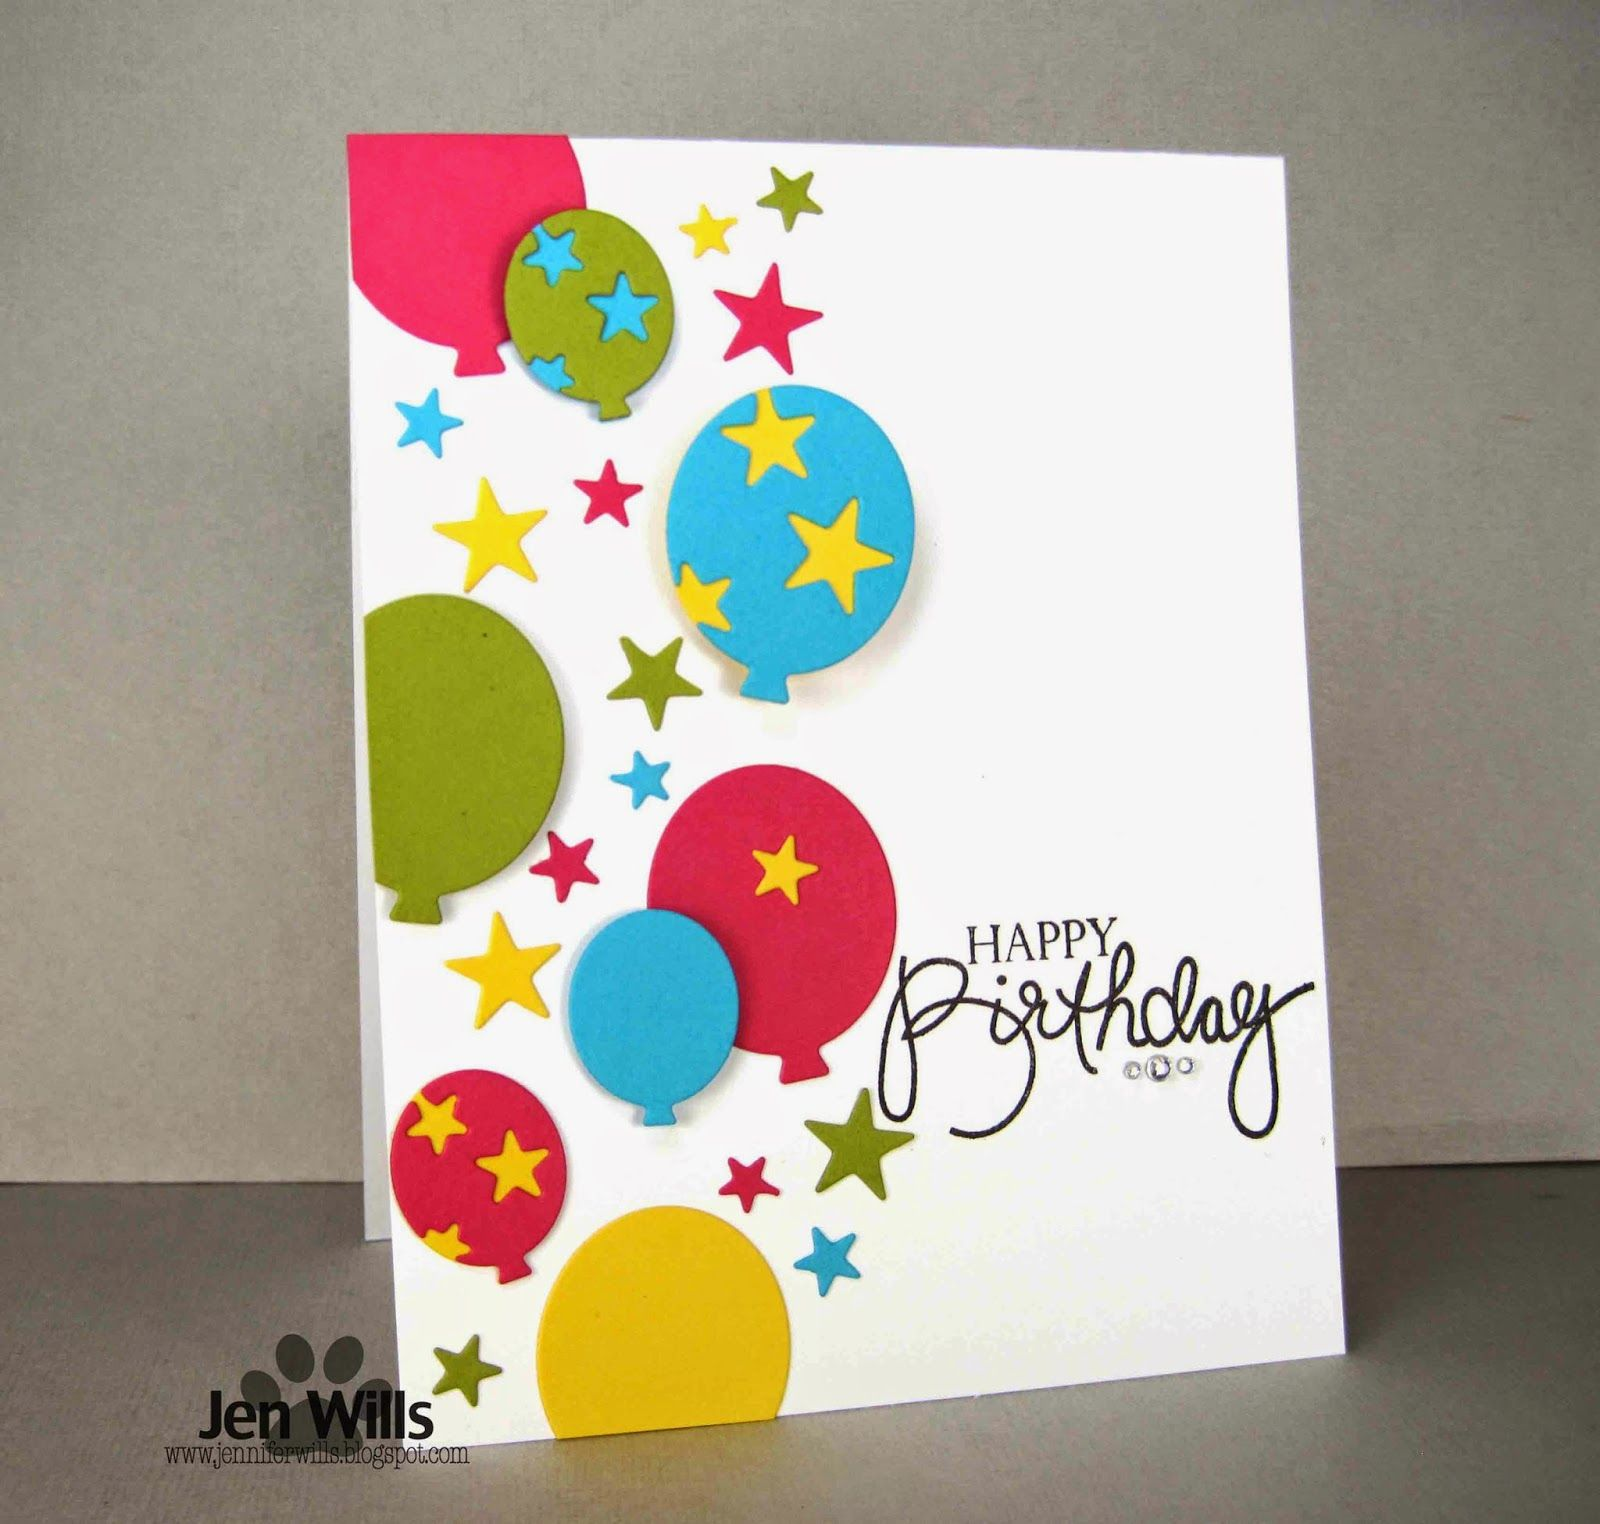 Jenerally speaking last oneu card pinterest cards card ideas